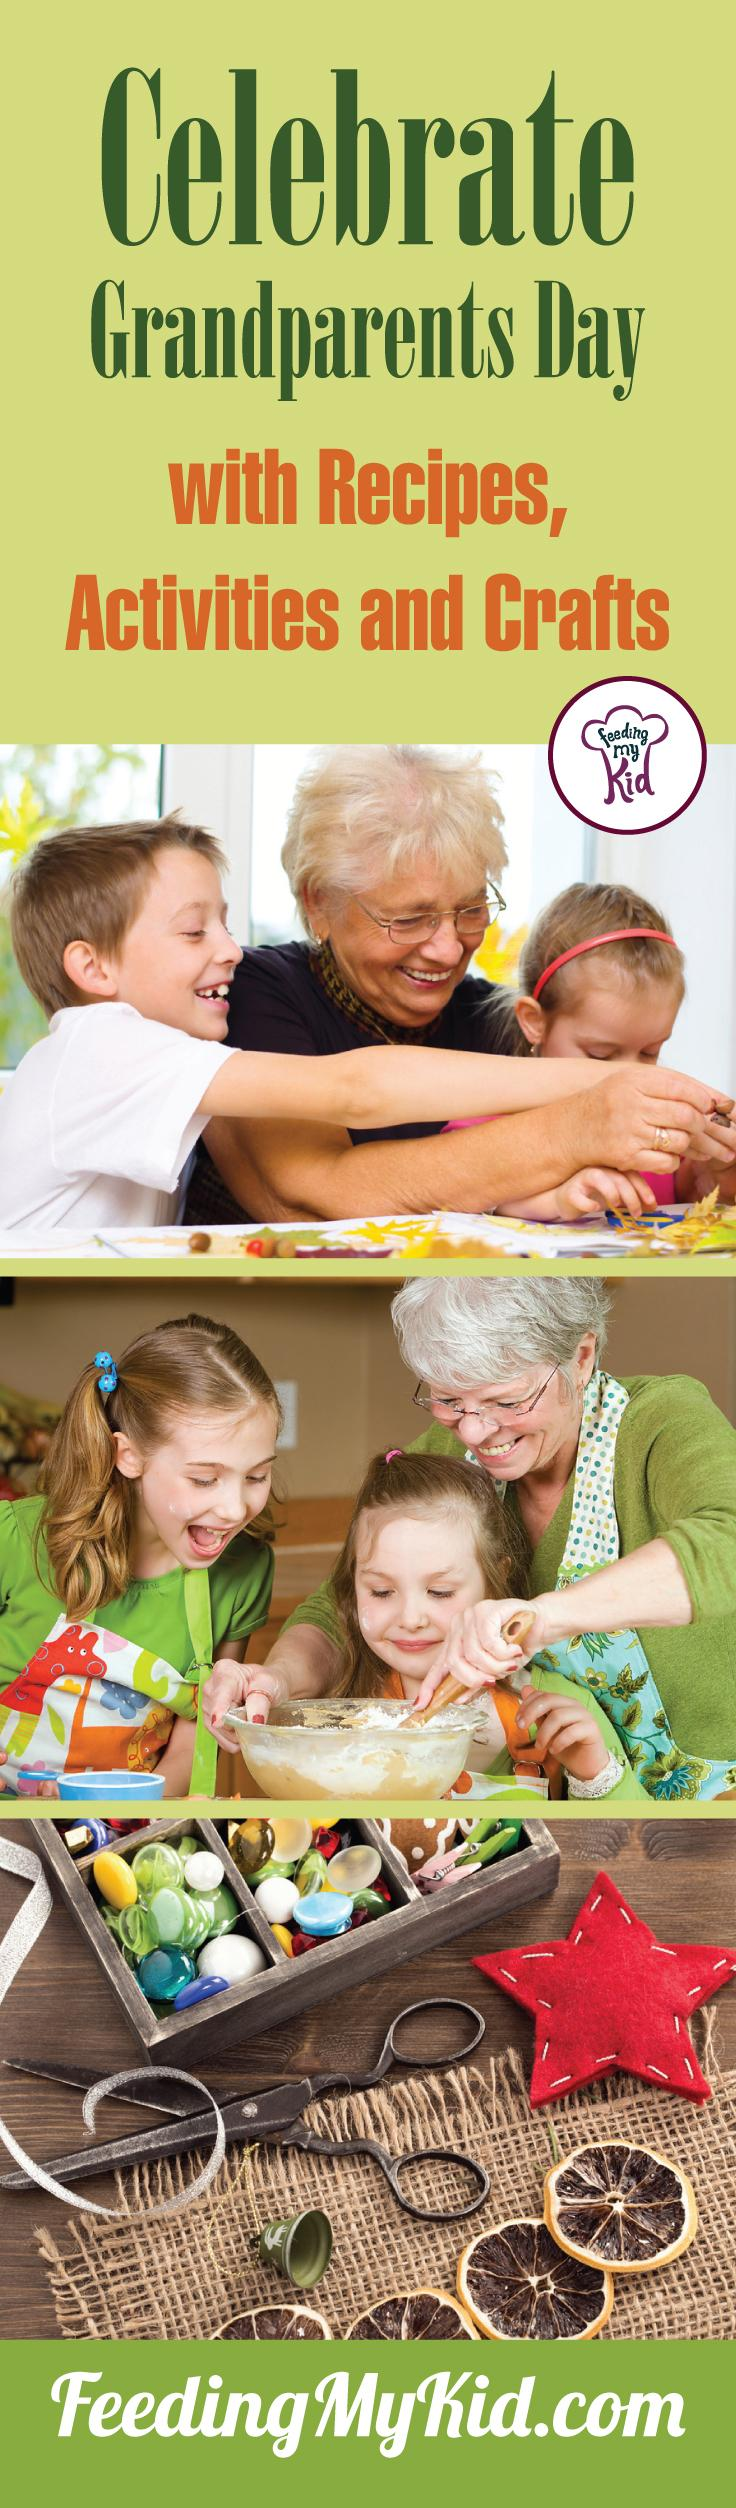 Check out these different recipes, activities, and crafts your kids can do with their grandparents on Grandparents Day! Enjoy the celebration!